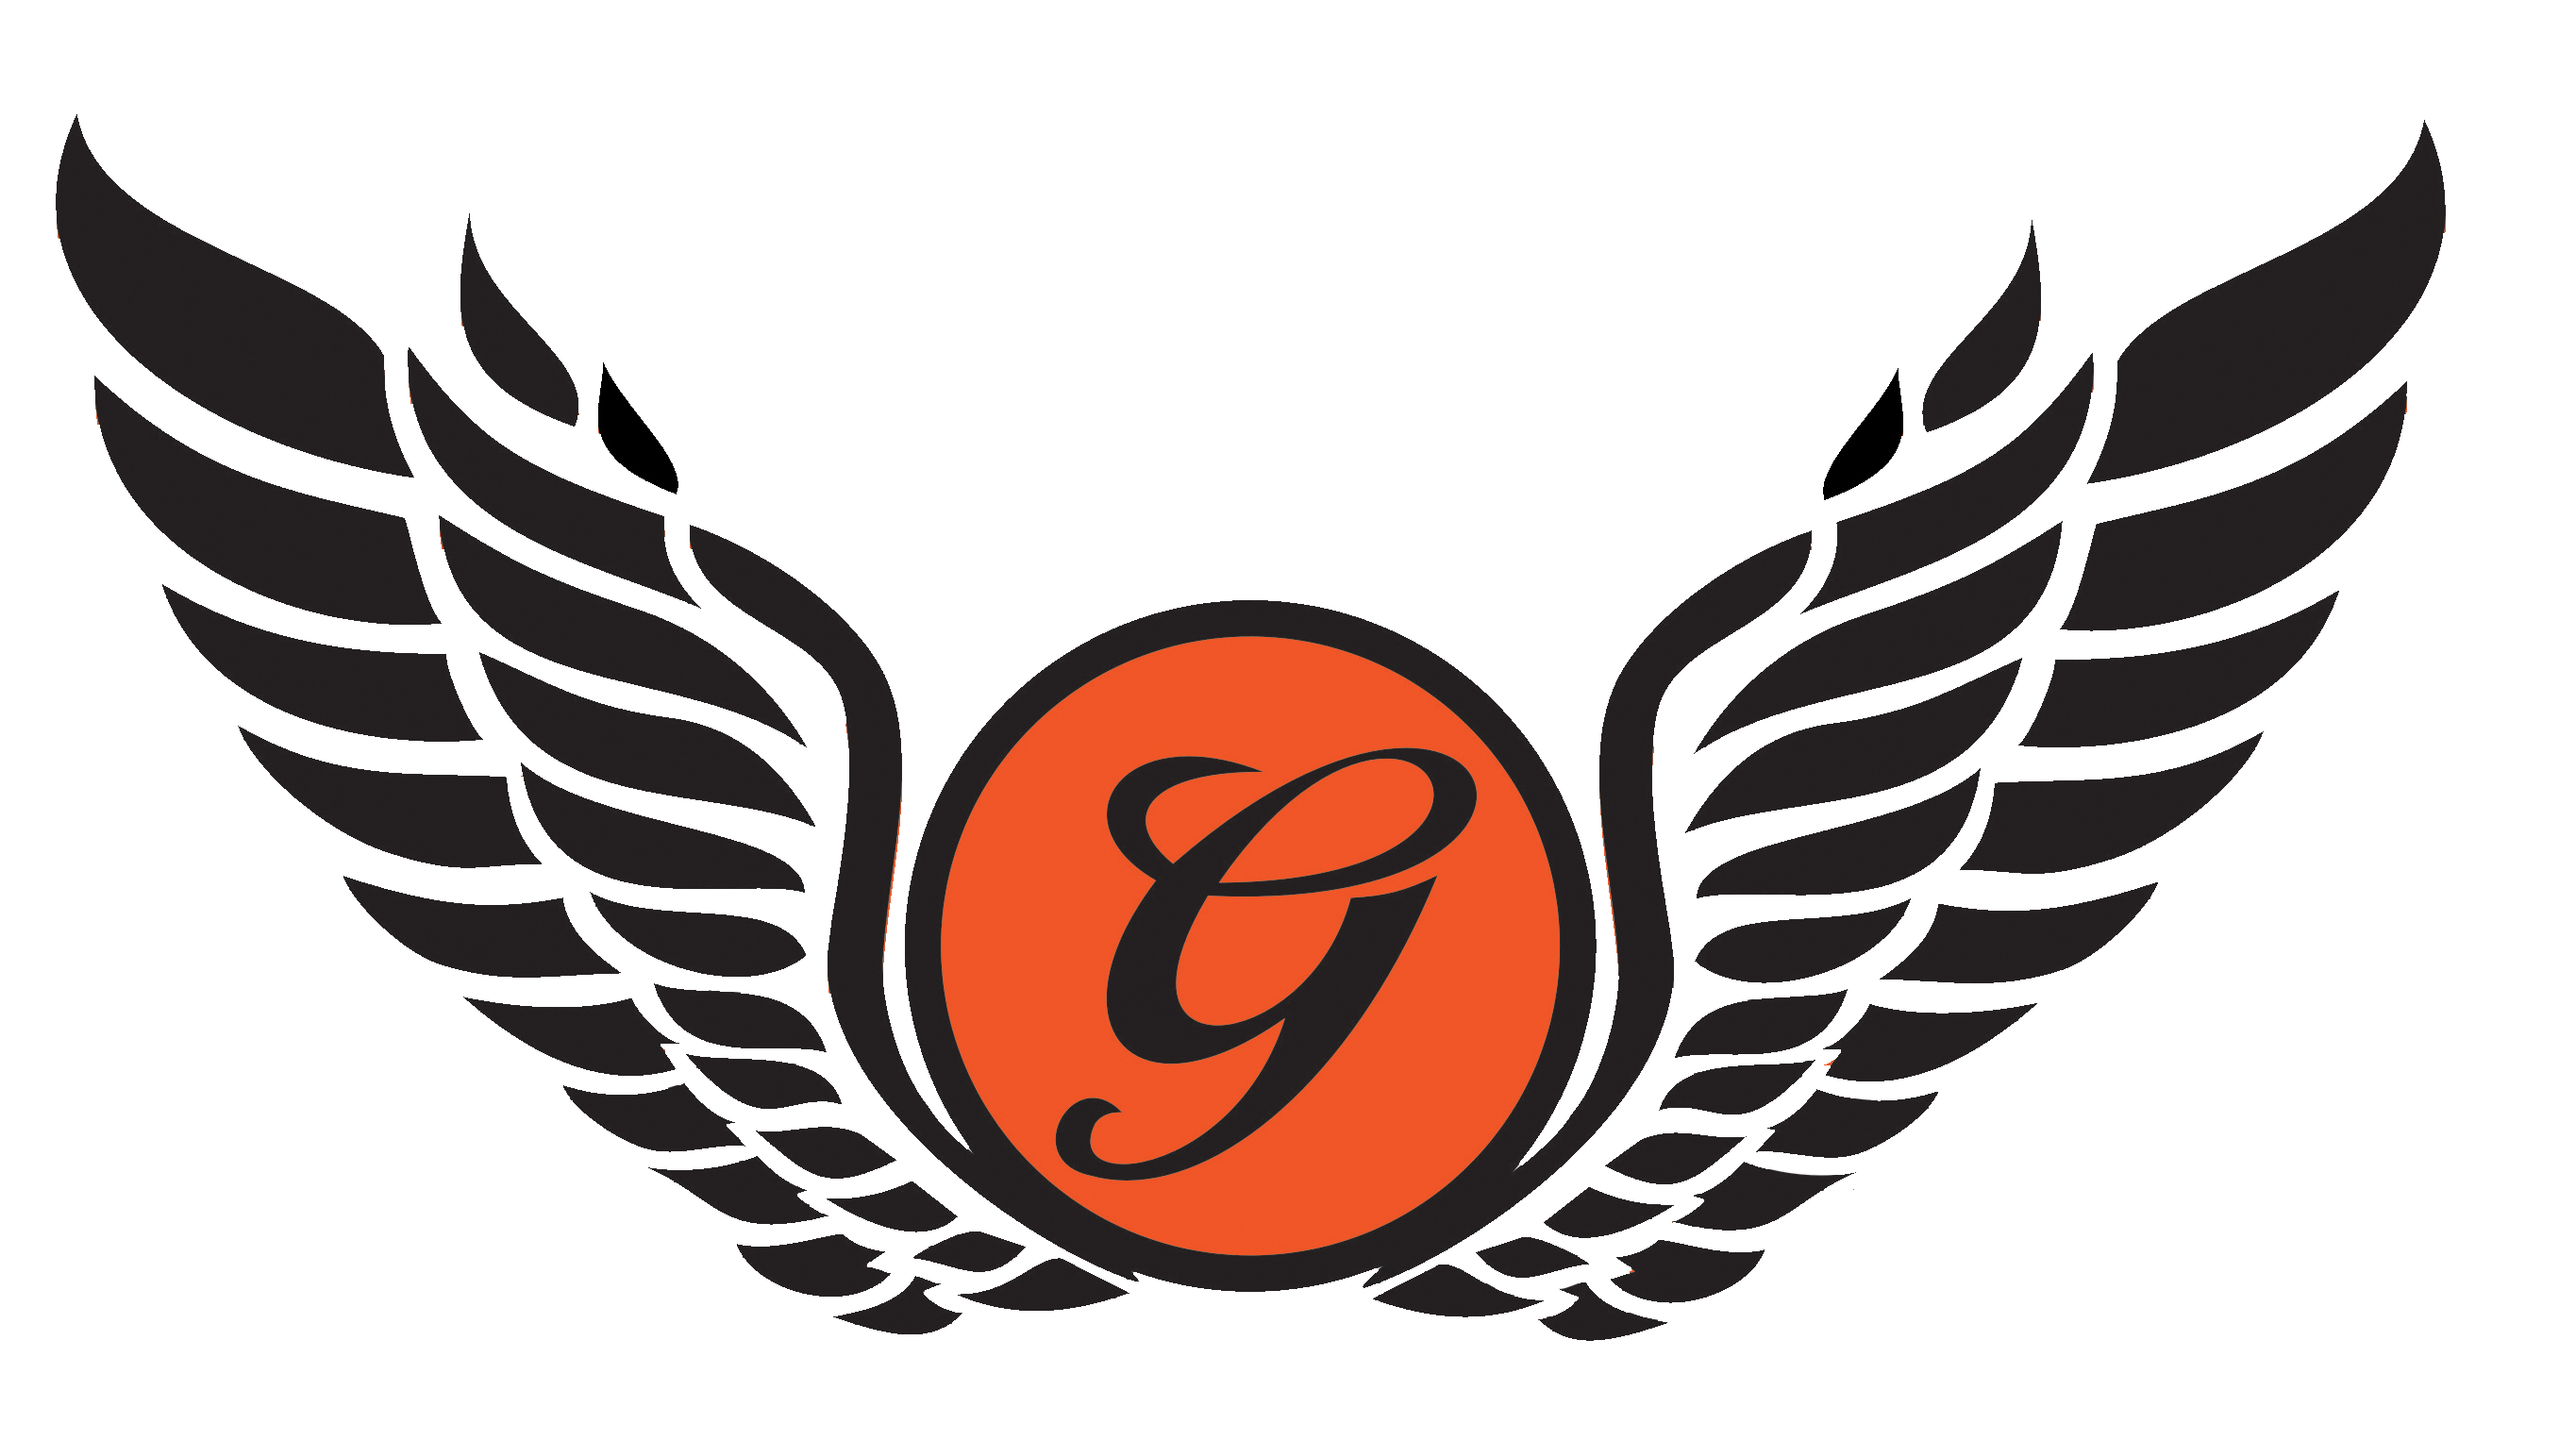 wing logo png clipart best